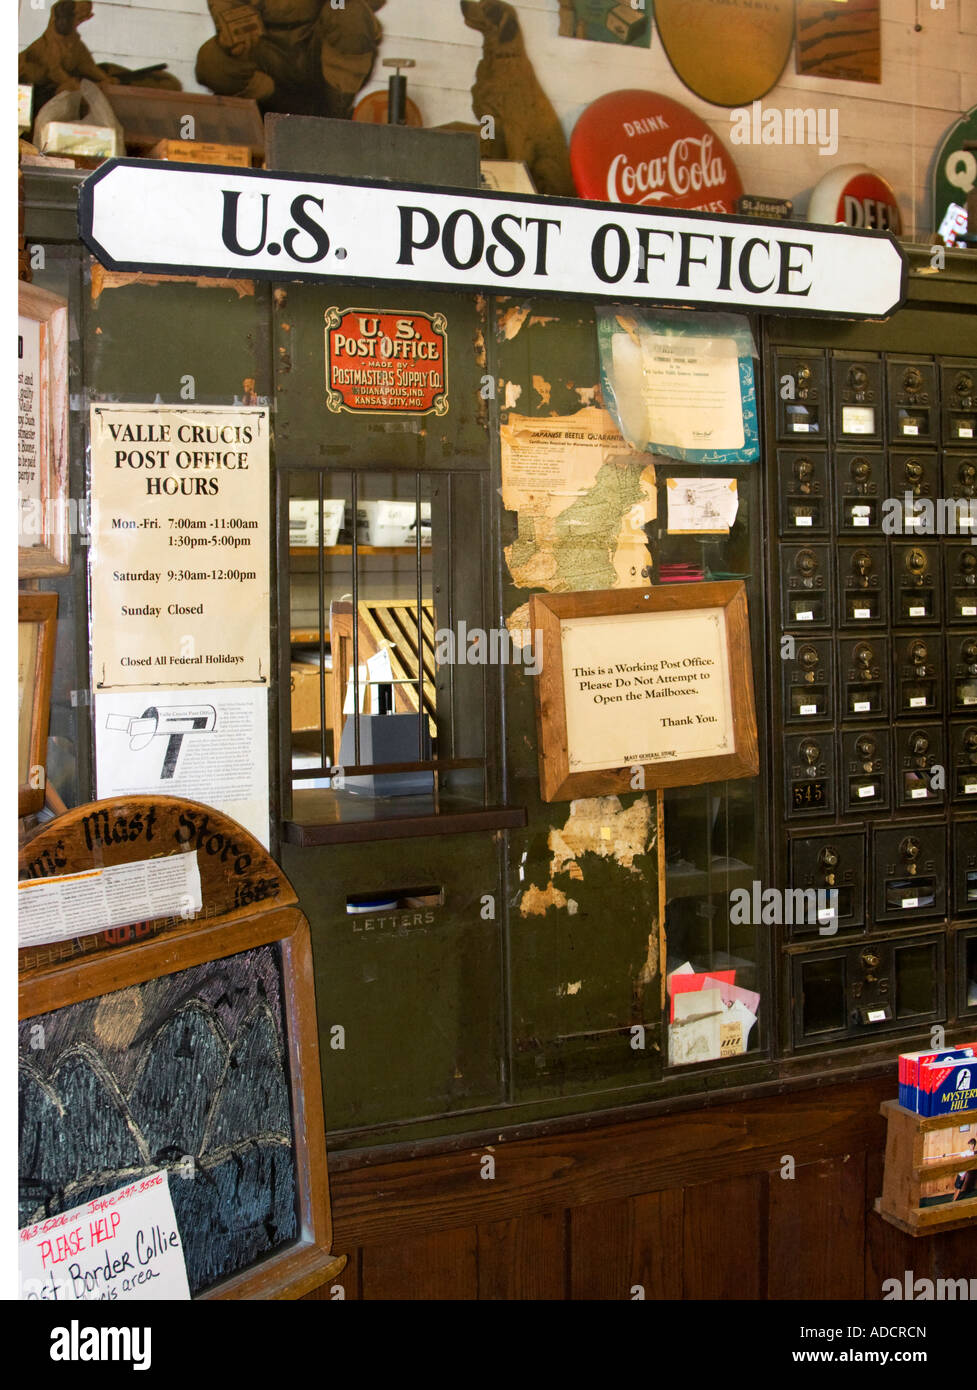 Interior Of Old Working Us Post Office Stock Photo Alamy Workingus es una empresa experta en asesorías migratorias y fortalecimiento económico. https www alamy com stock photo interior of old working us post office 13379780 html